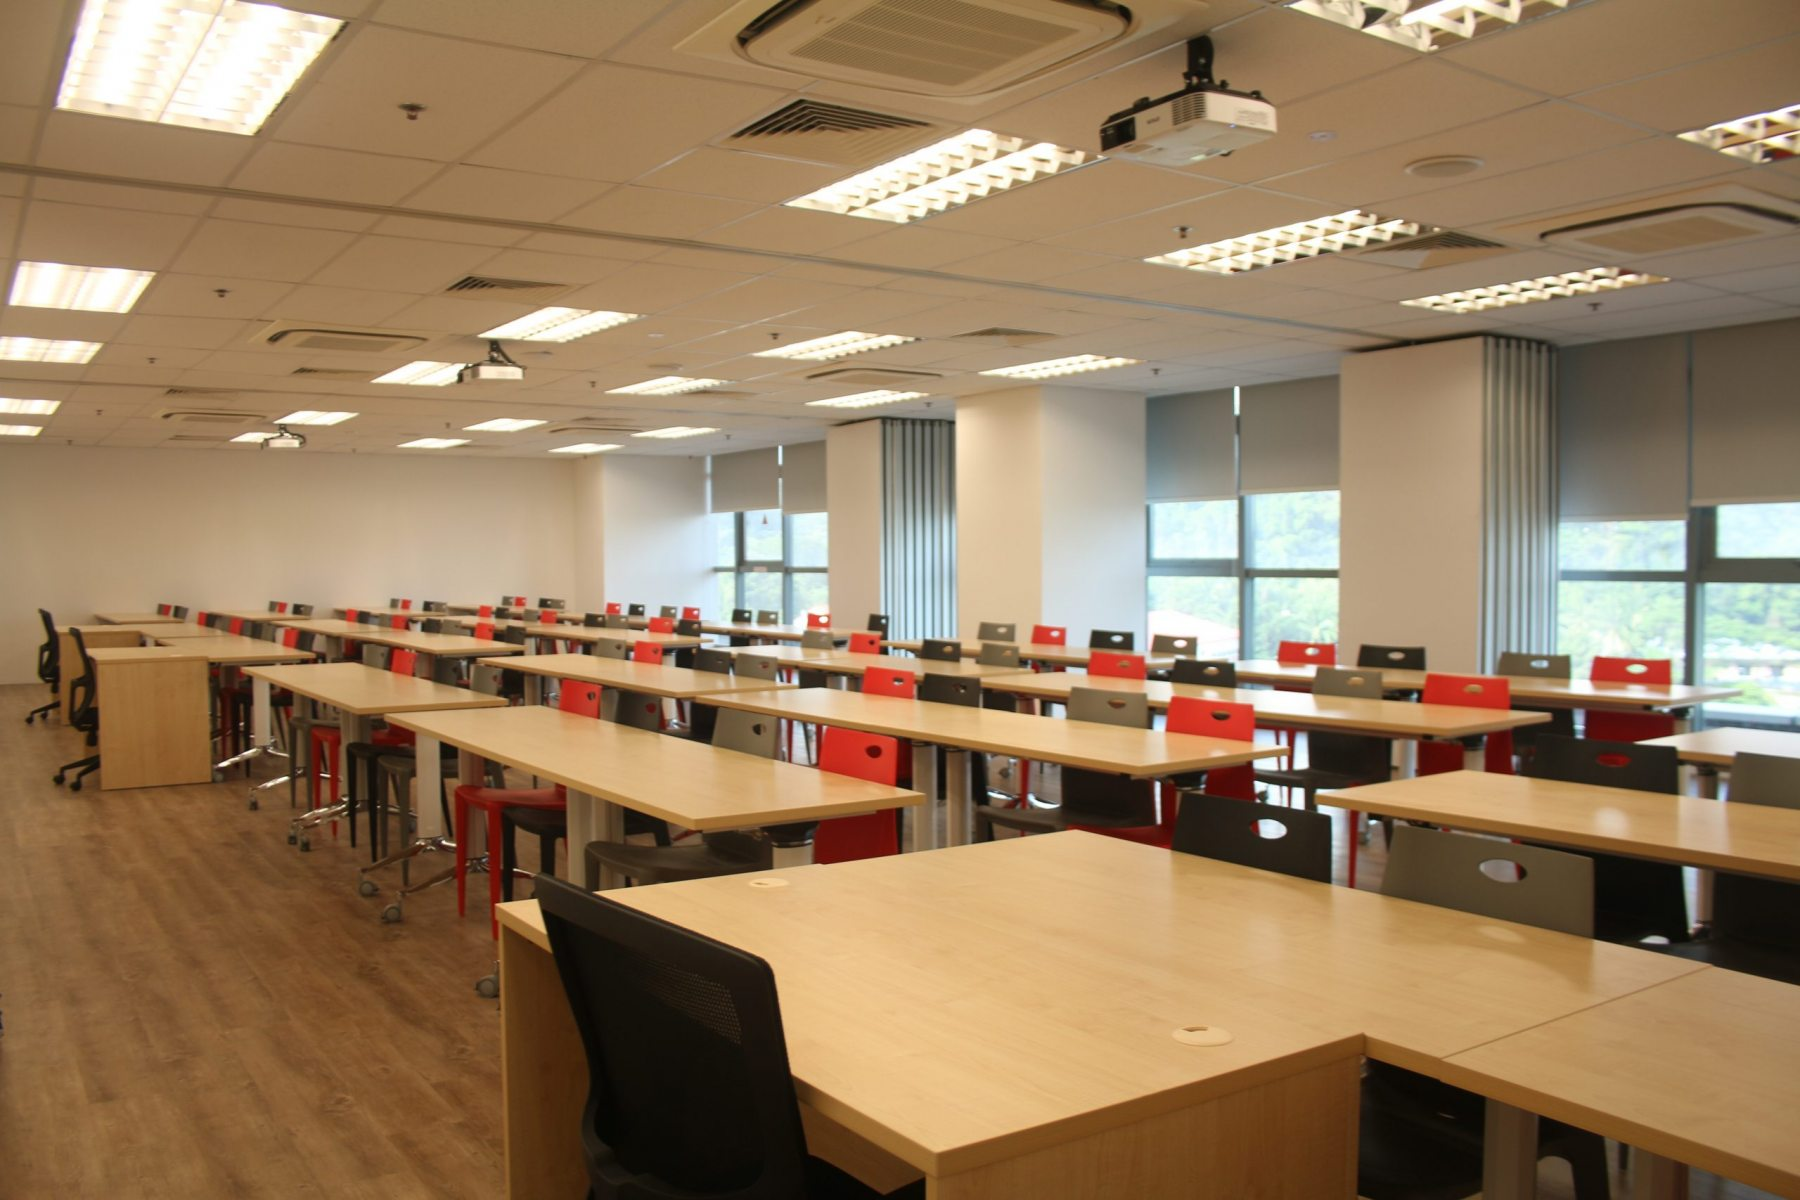 Classroom-2-scaled